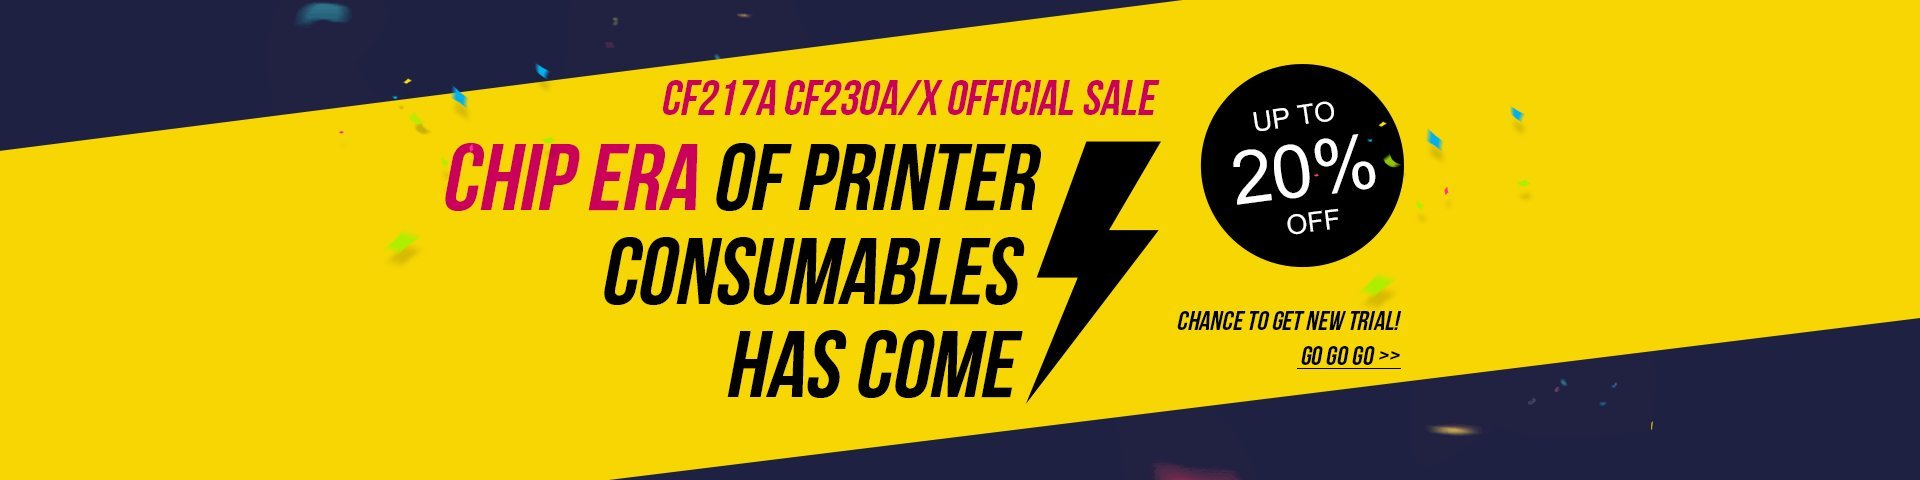 CF217A CF230A/X Official Sale